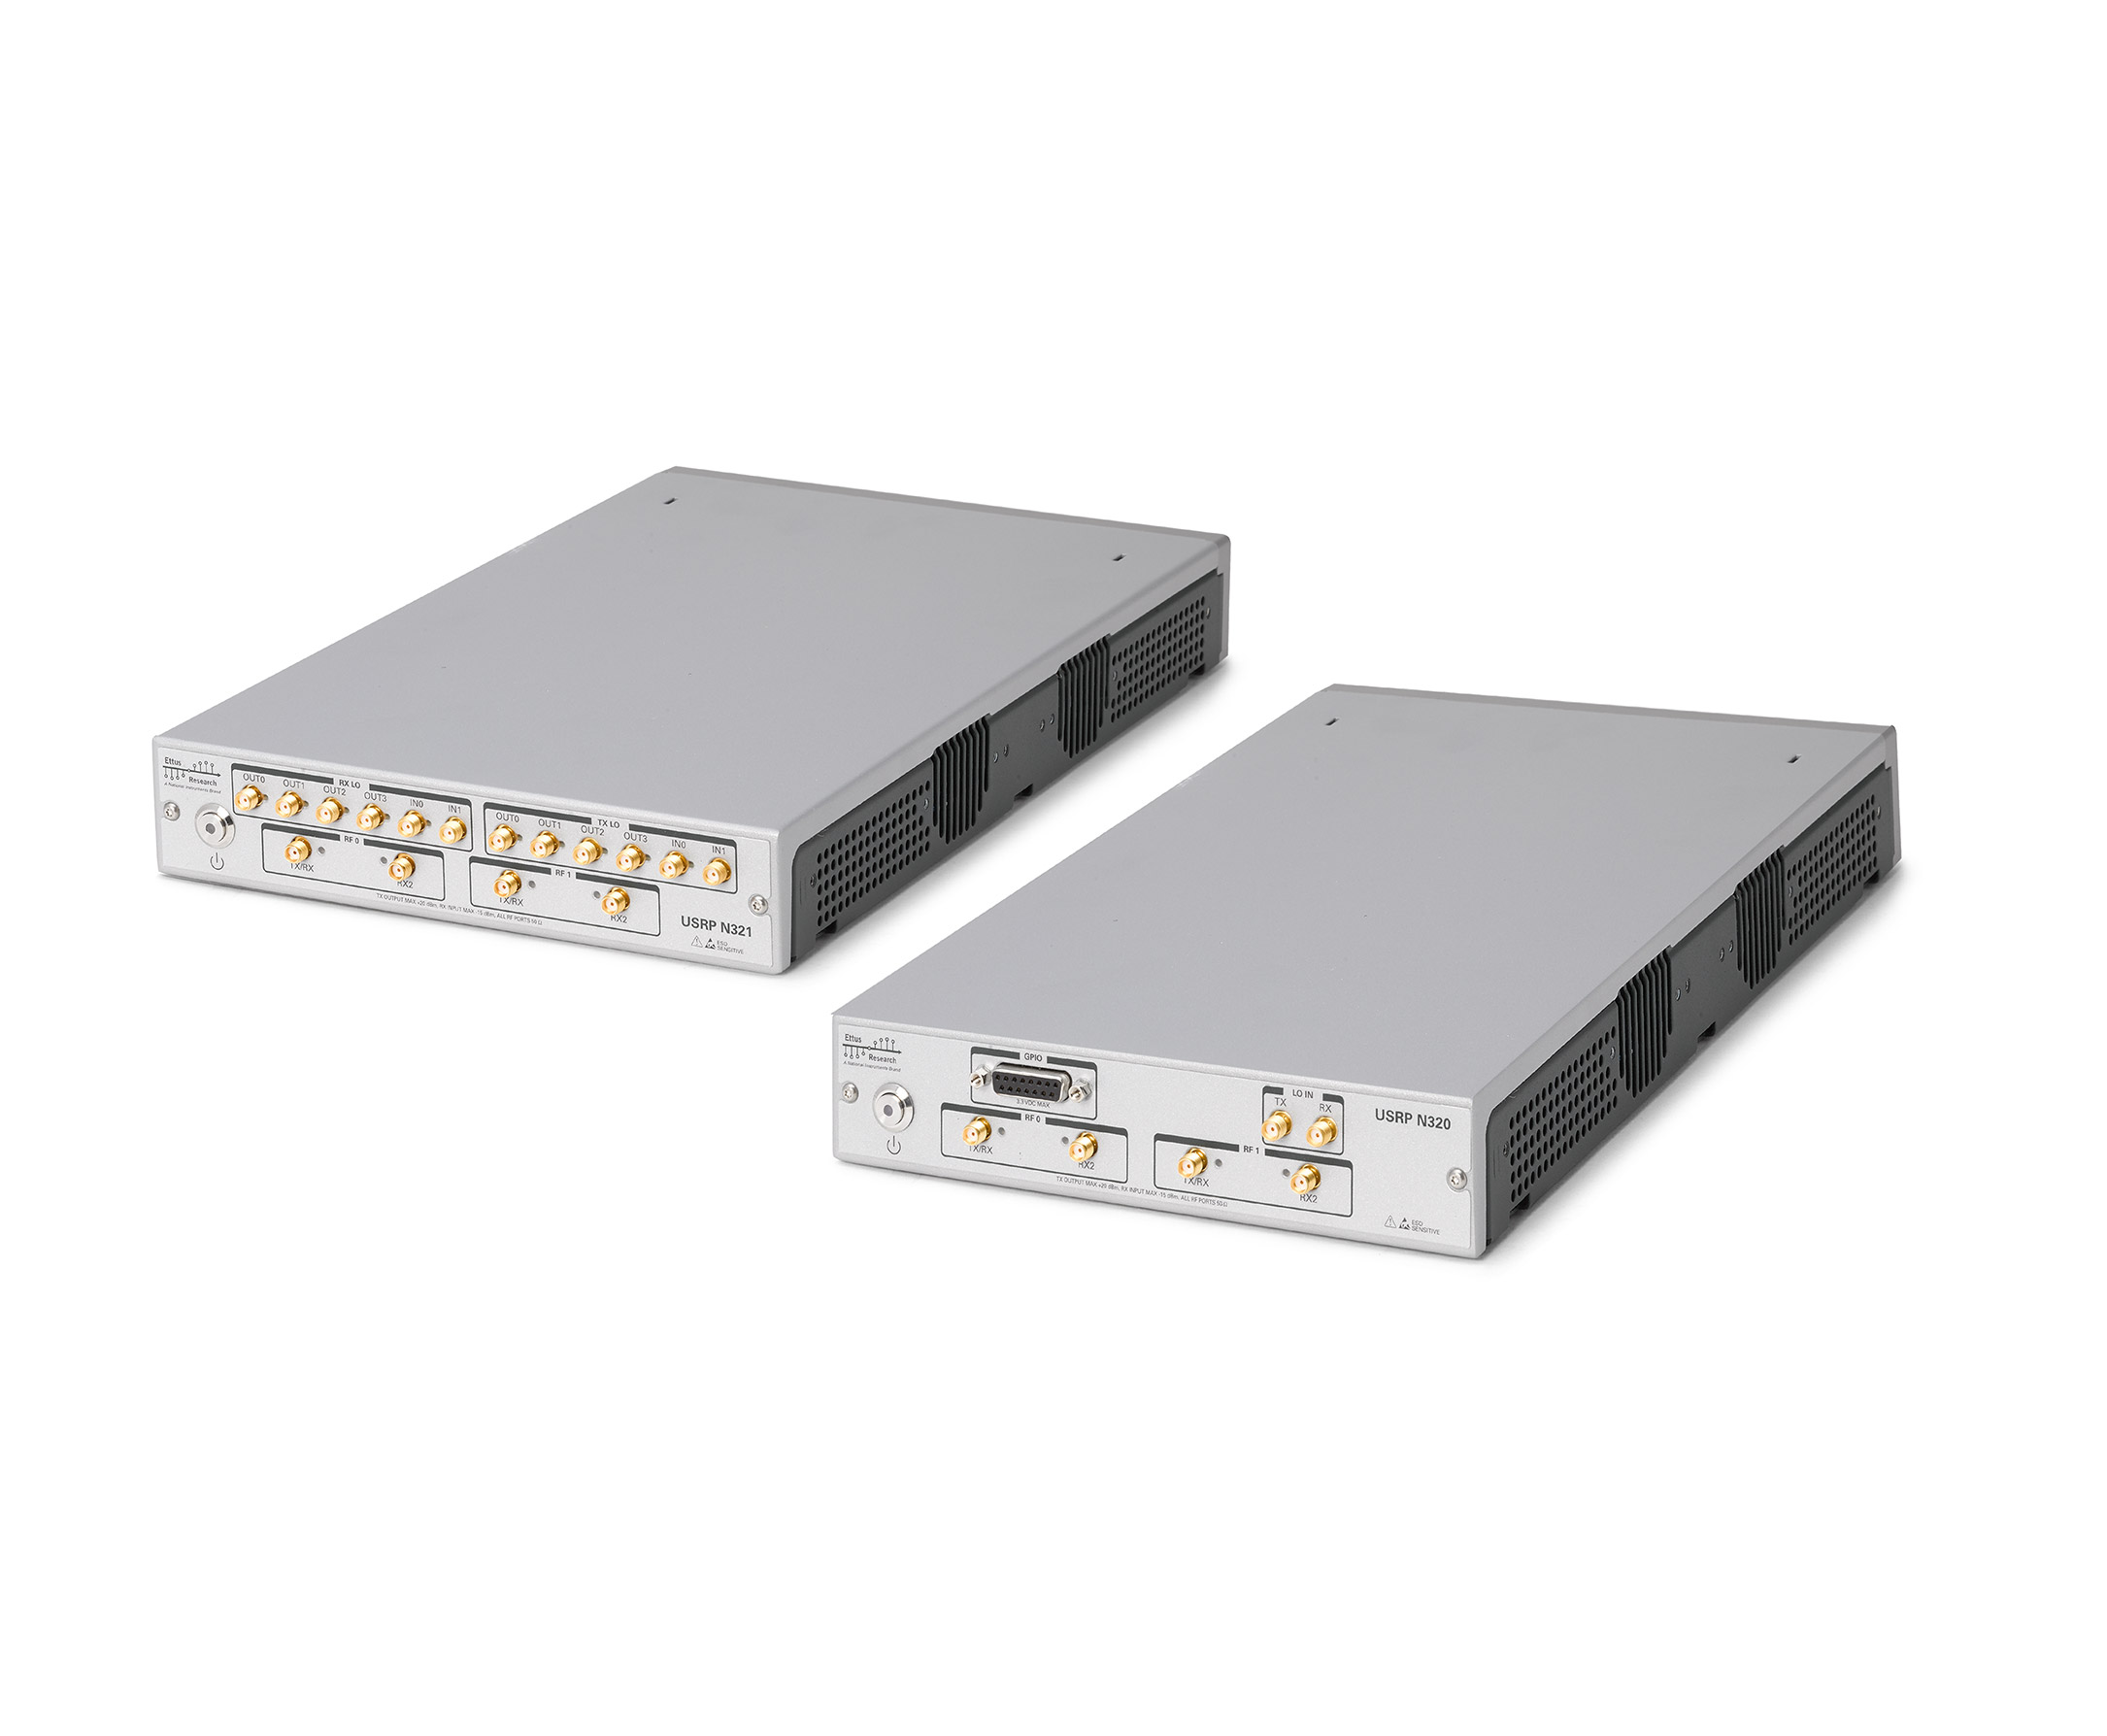 side by side comparison of the USRP N320 and USRP N321